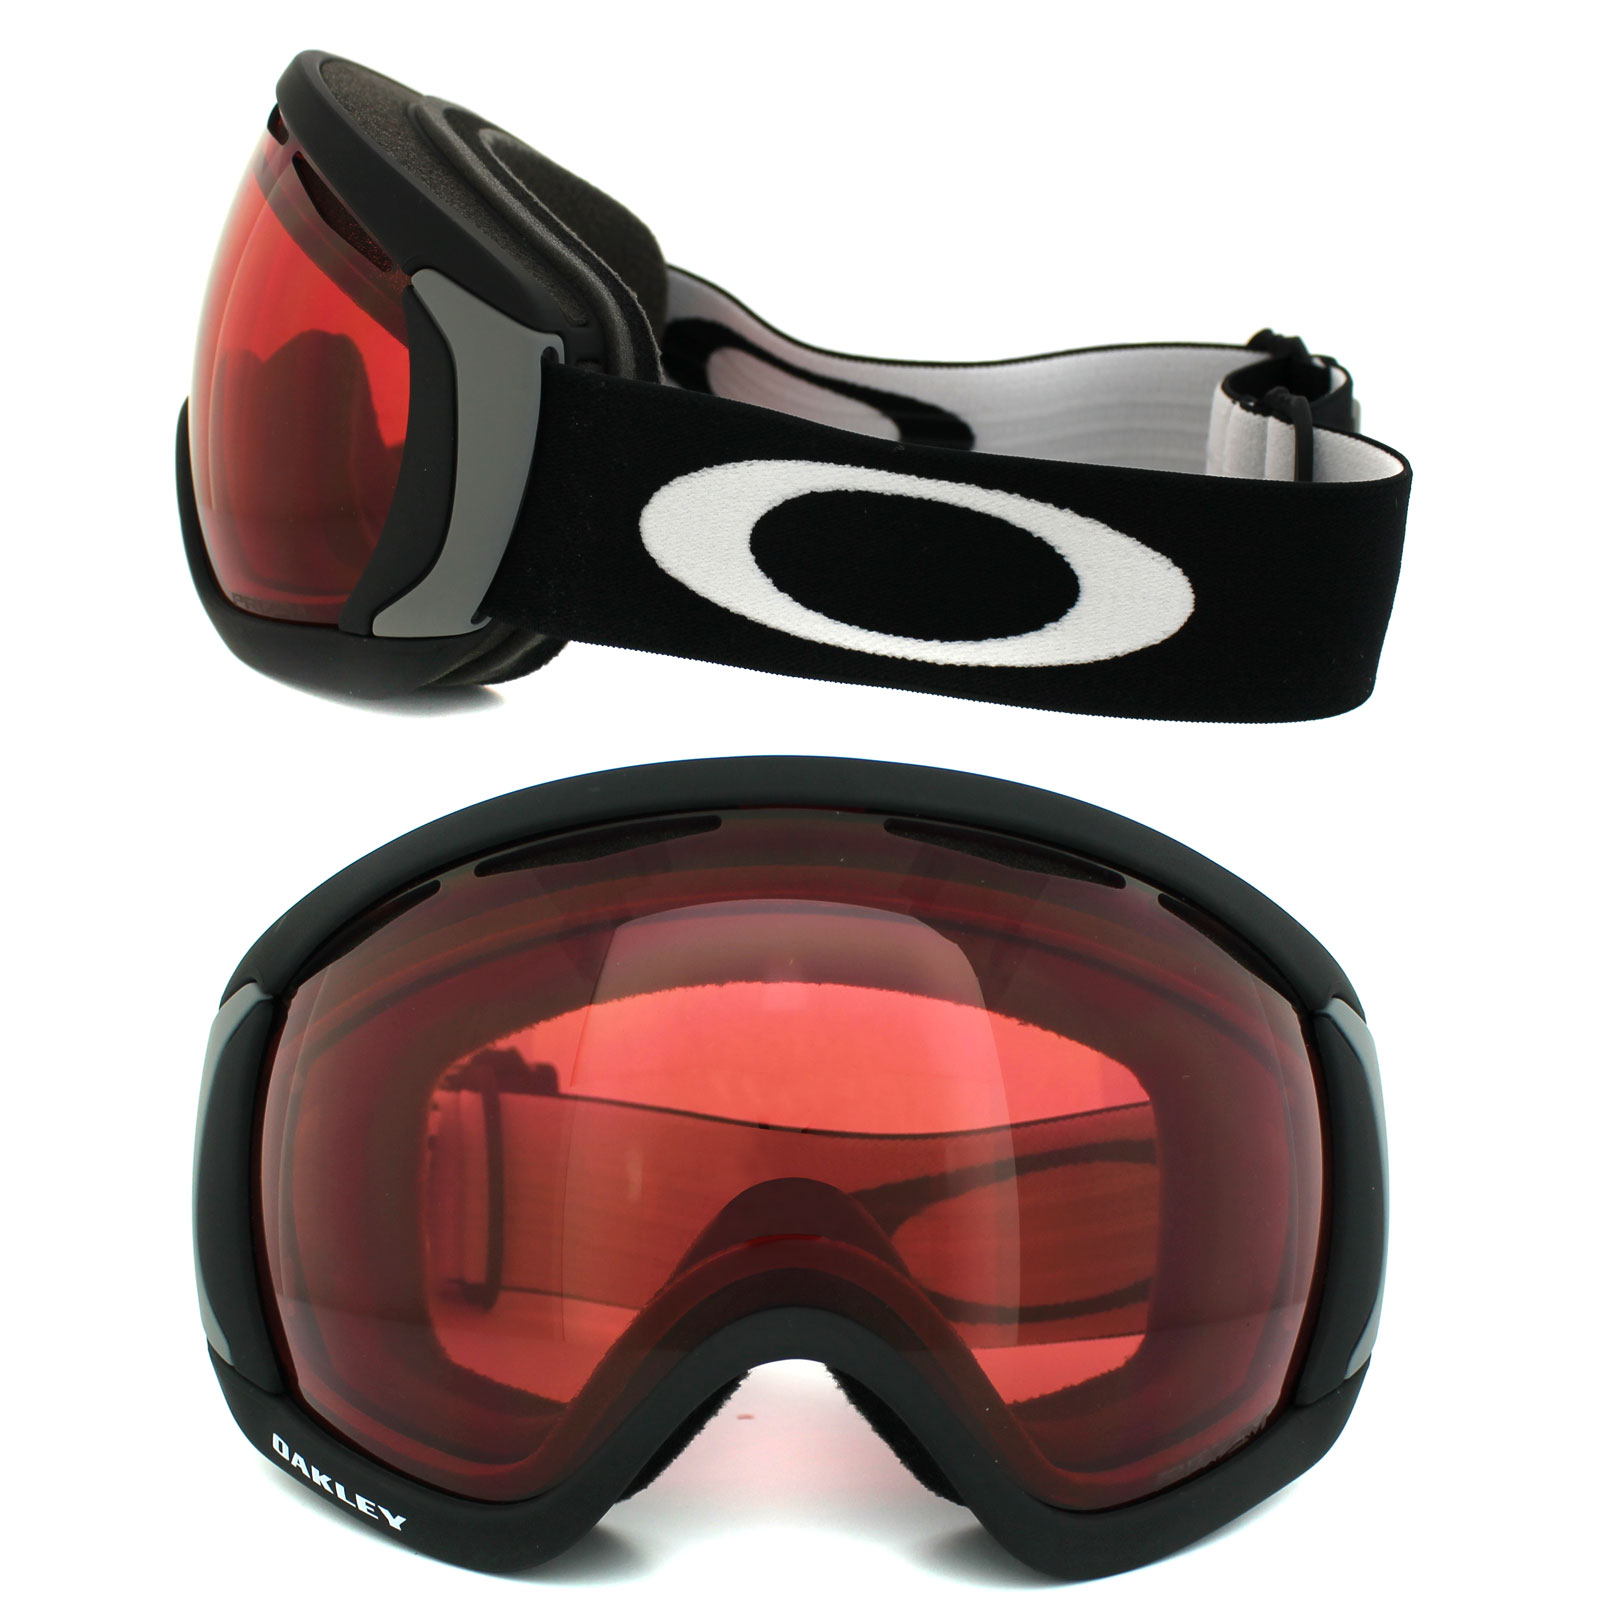 Cheap Oakley Canopy Goggles Discounted Sunglasses